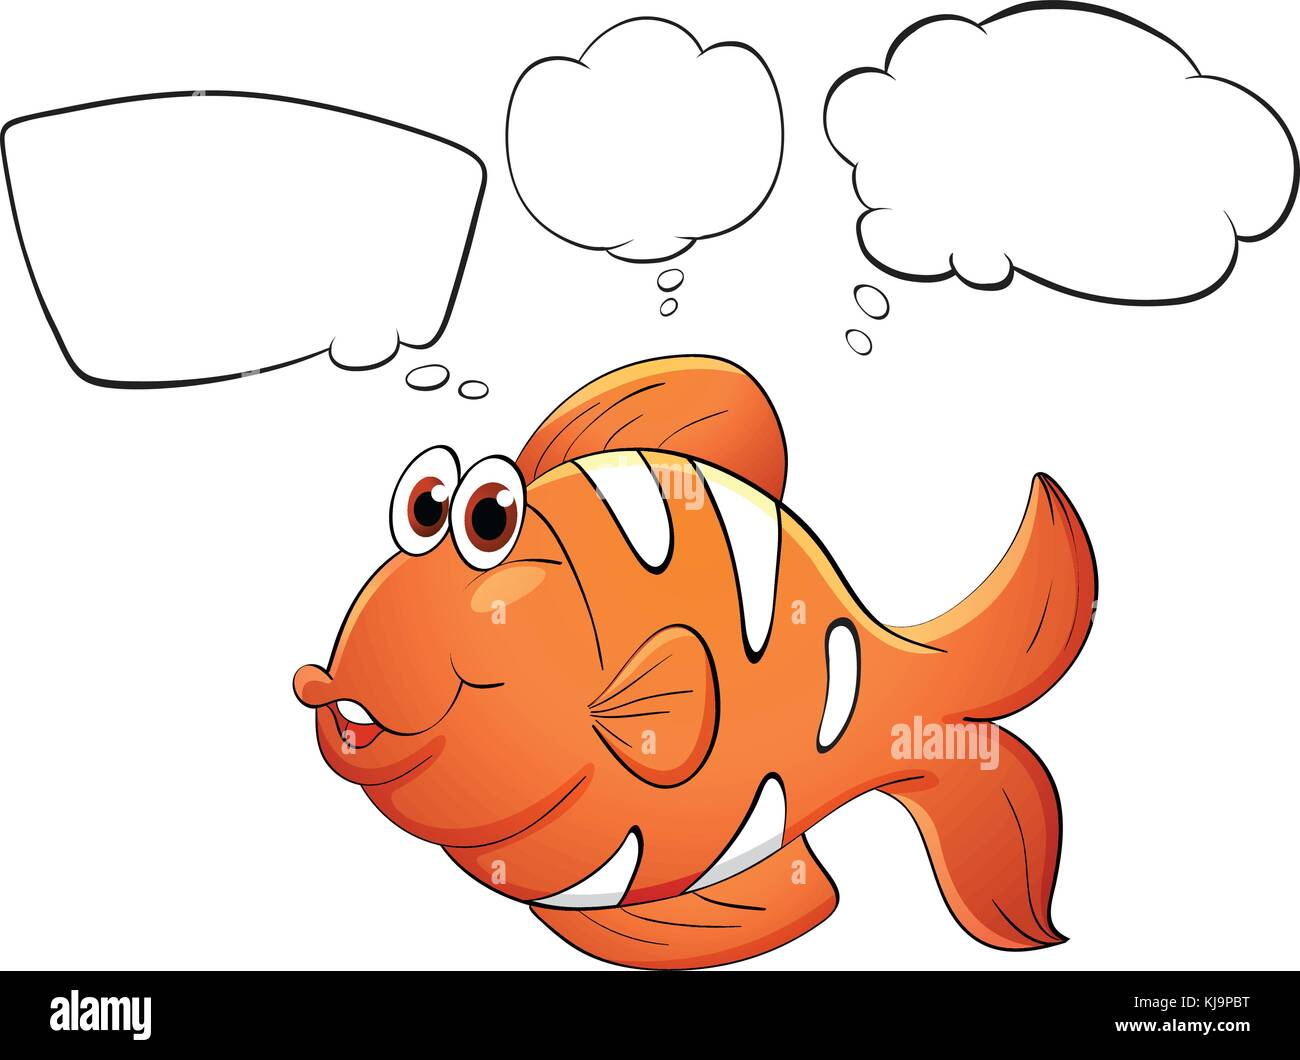 Illustration of an orange fish with empty bubbles notes on a white background - Stock Vector